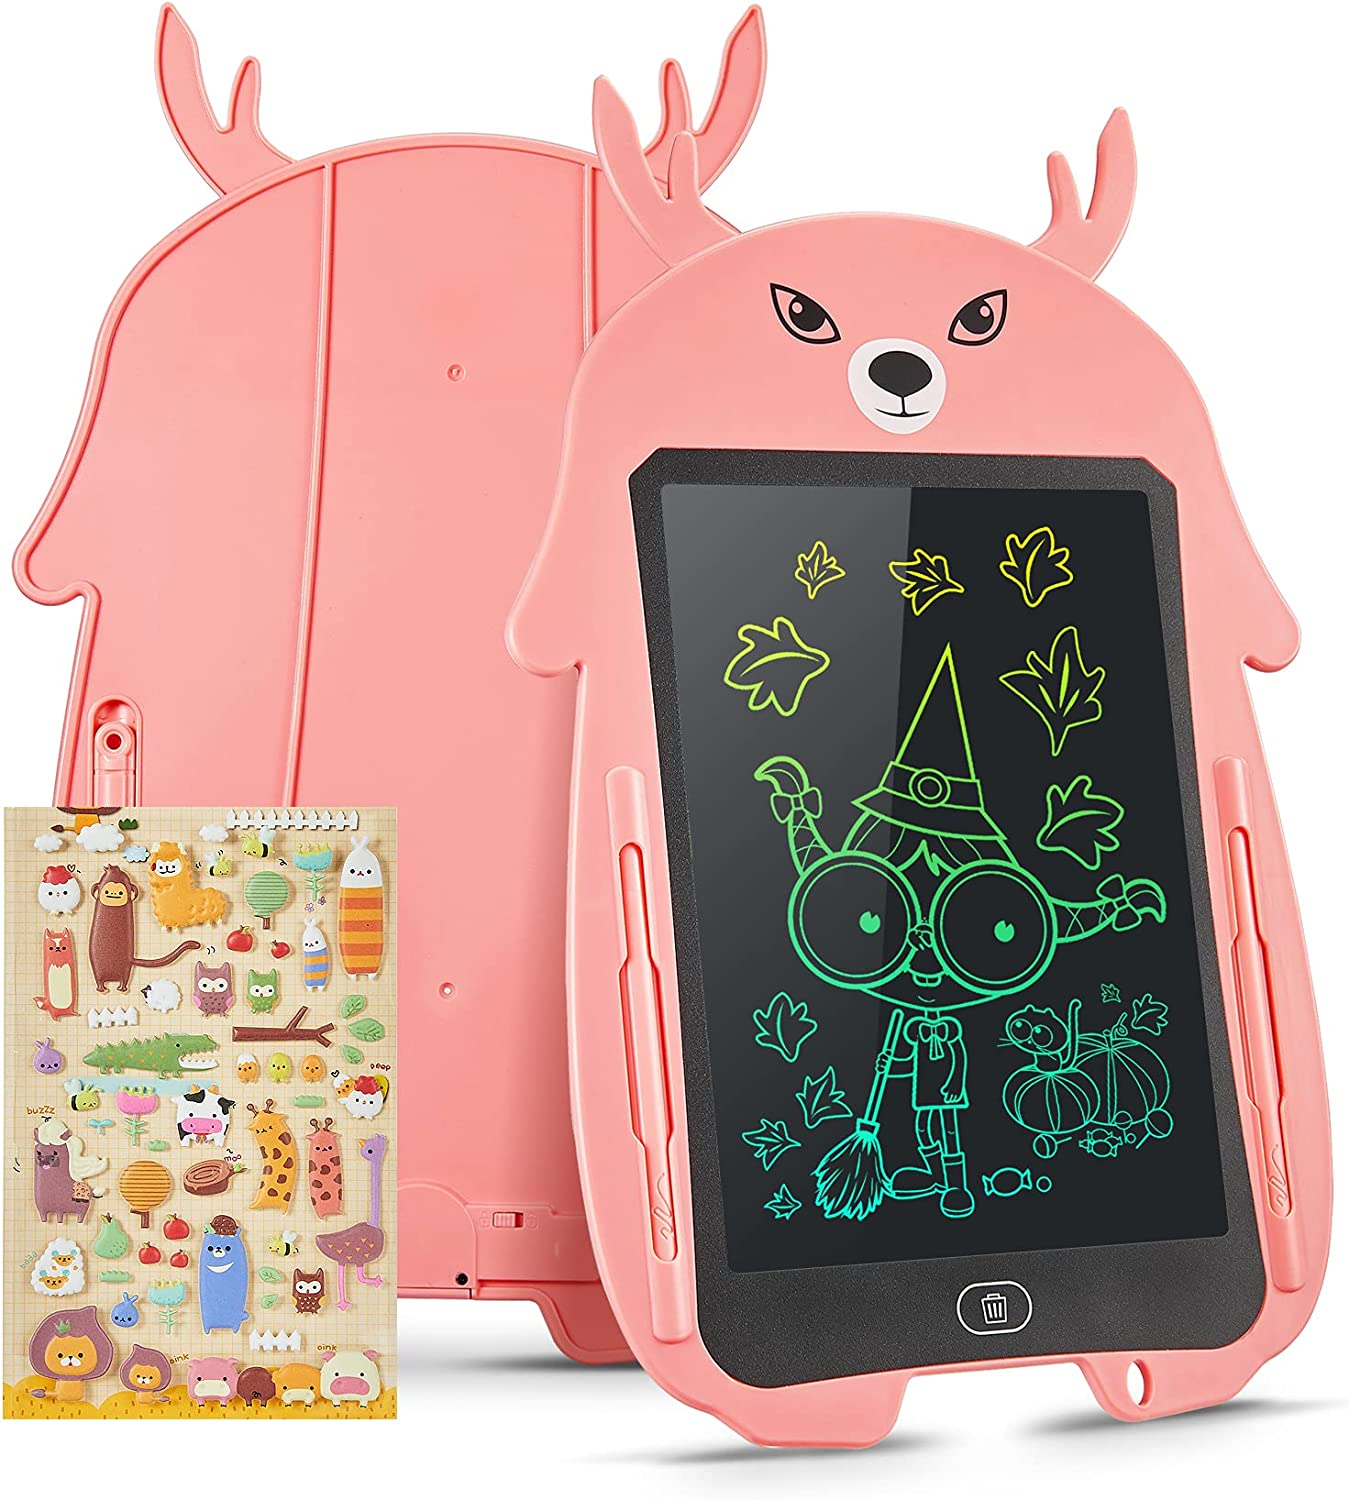 Genialba LCD Writing Tablet 8.5-Inch Elk Colorful Doodle Board, Toddler Learning Educational Toys Gifts for 3-7 Years Old Girls and Boys, Electronic Drawing Tablet Drawing Pad for Kids (Pink)